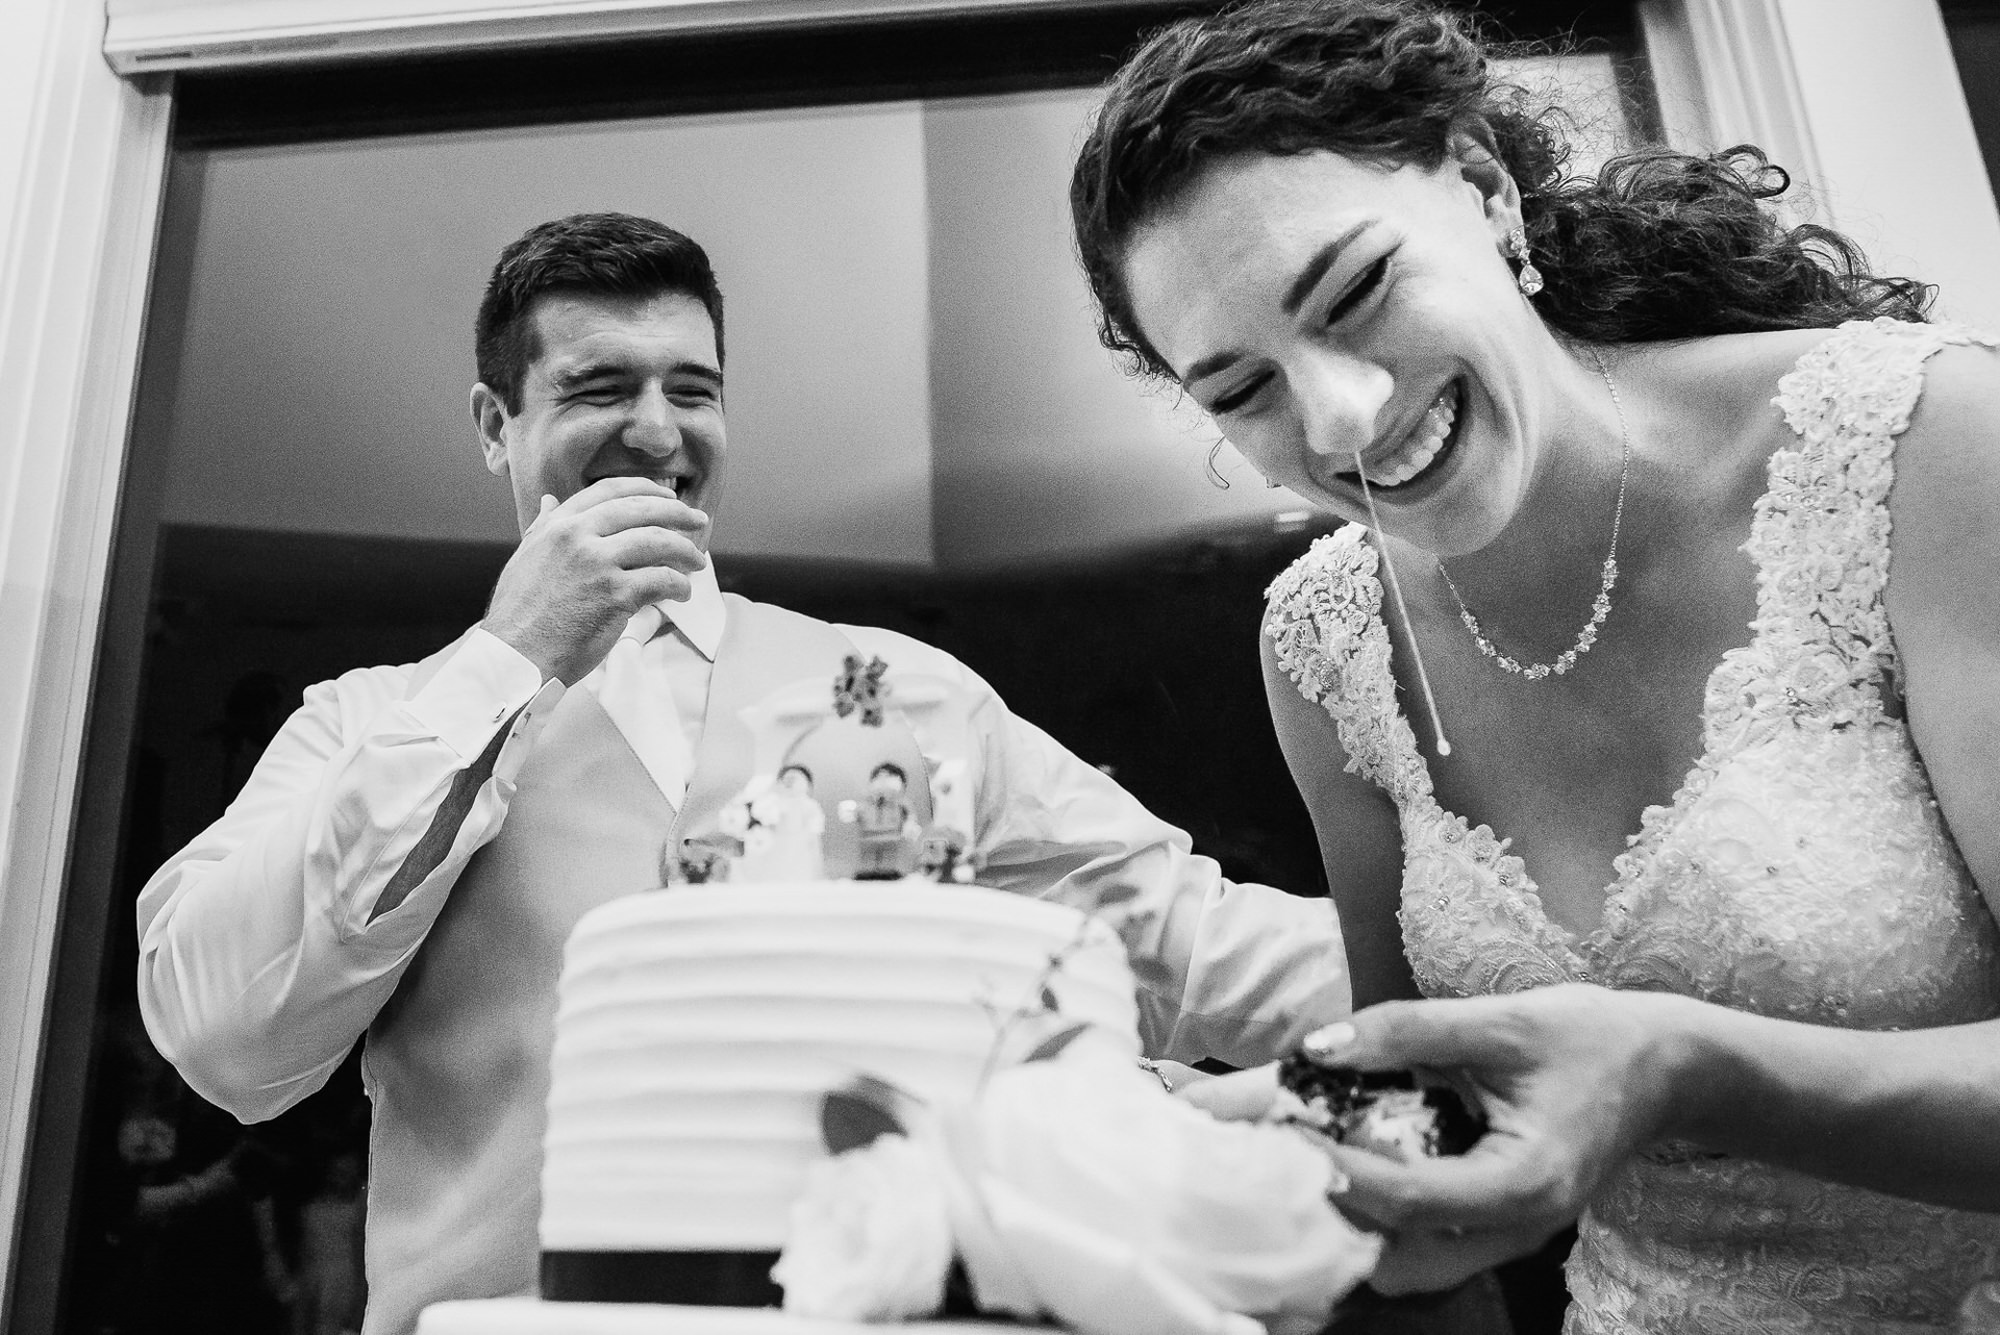 Bride cuts the cake with her nose running - photo by Ken Pak - Washington D.C